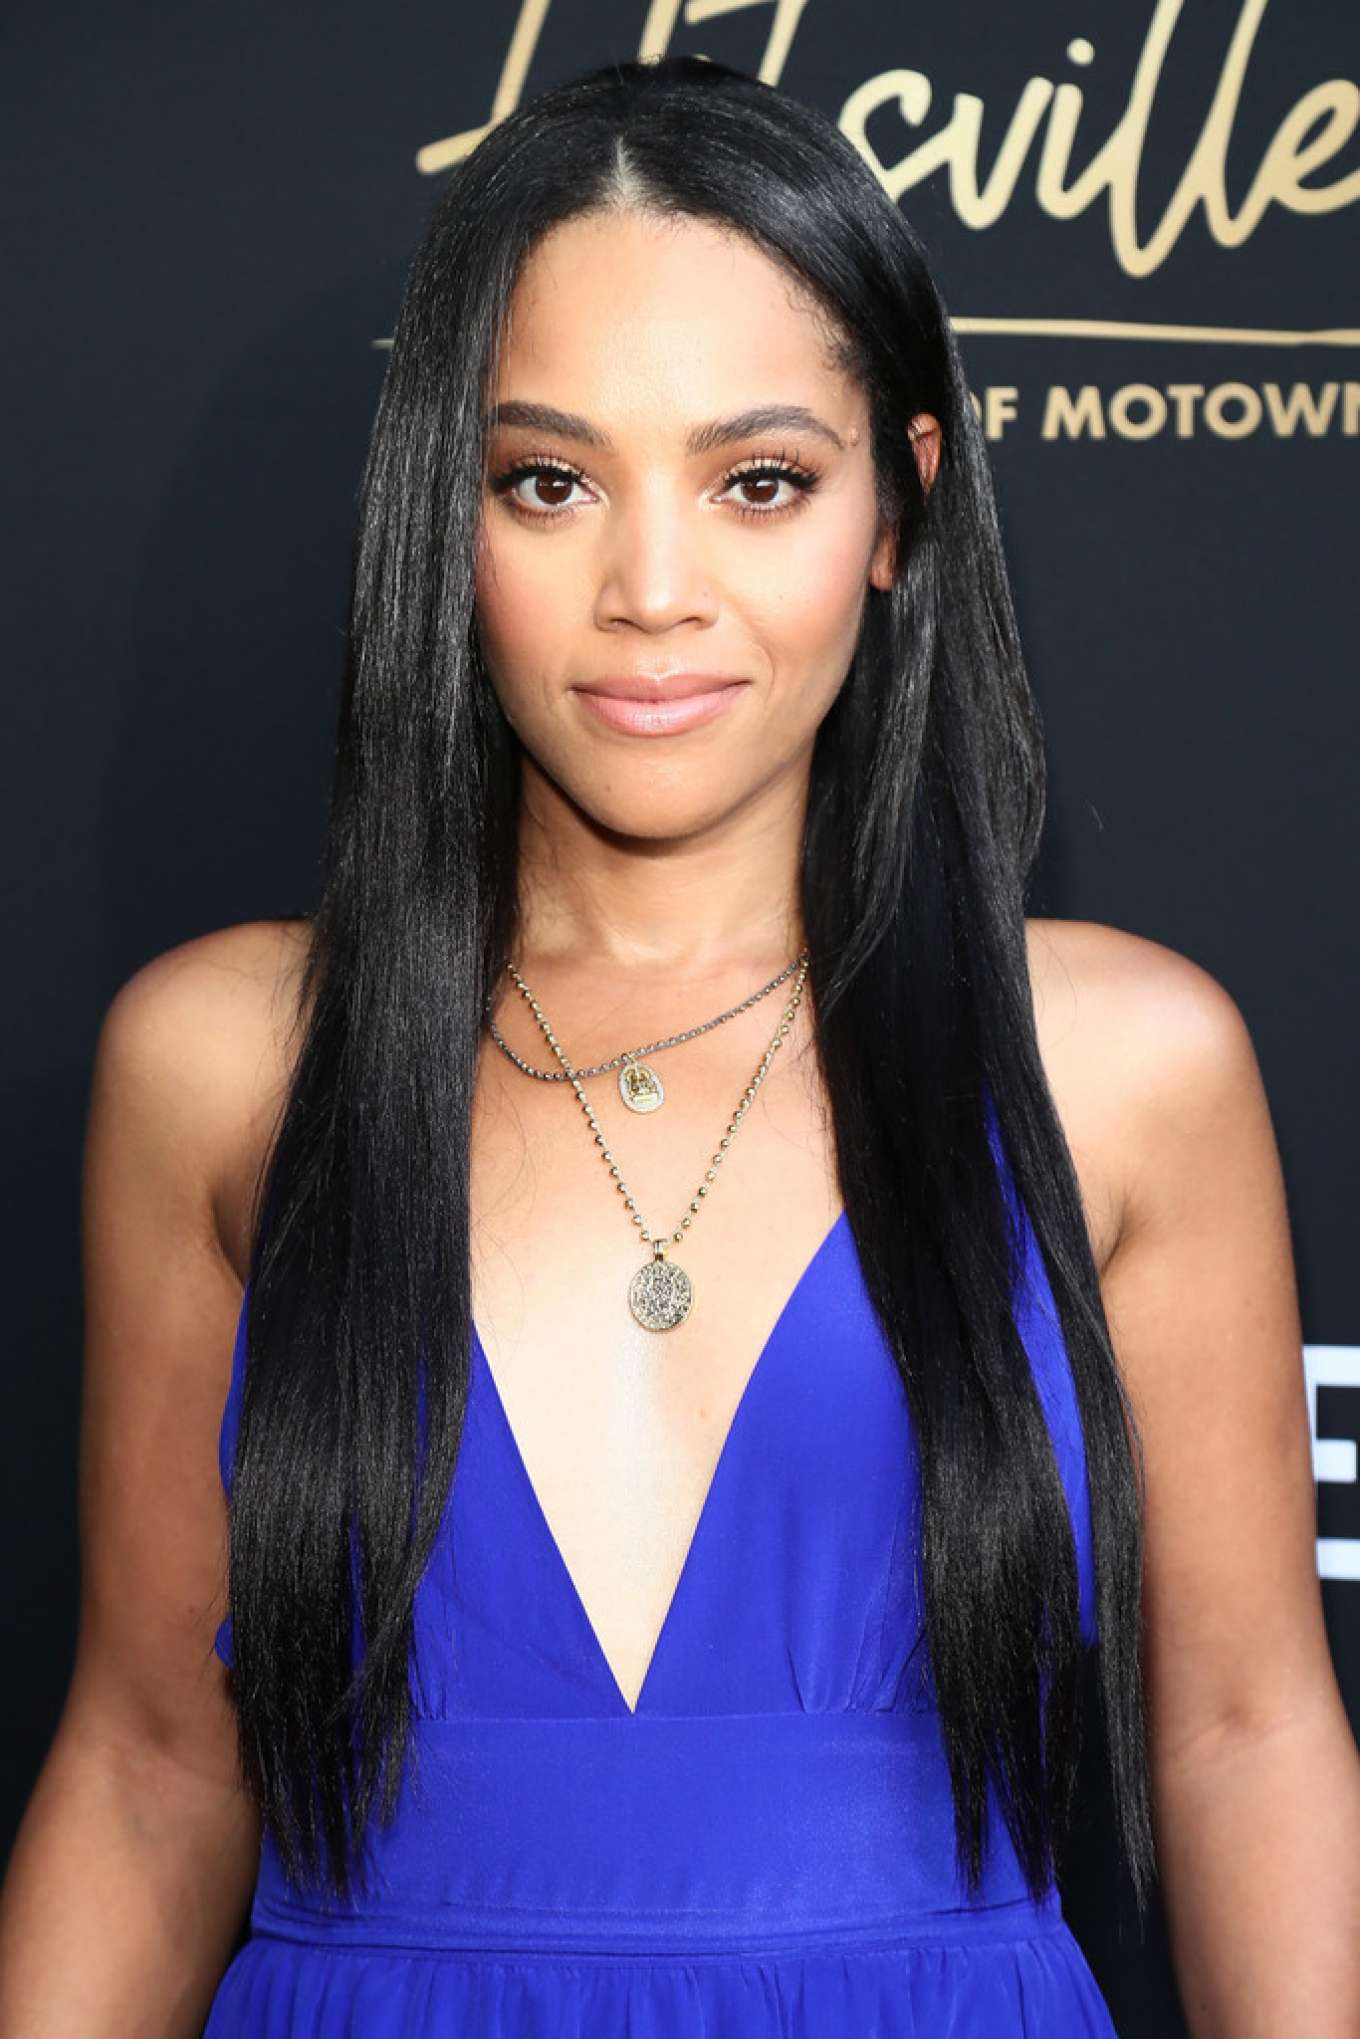 Bianca Lawson - Hitsville: The Making Of Motown premiere photocall in Los Angeles